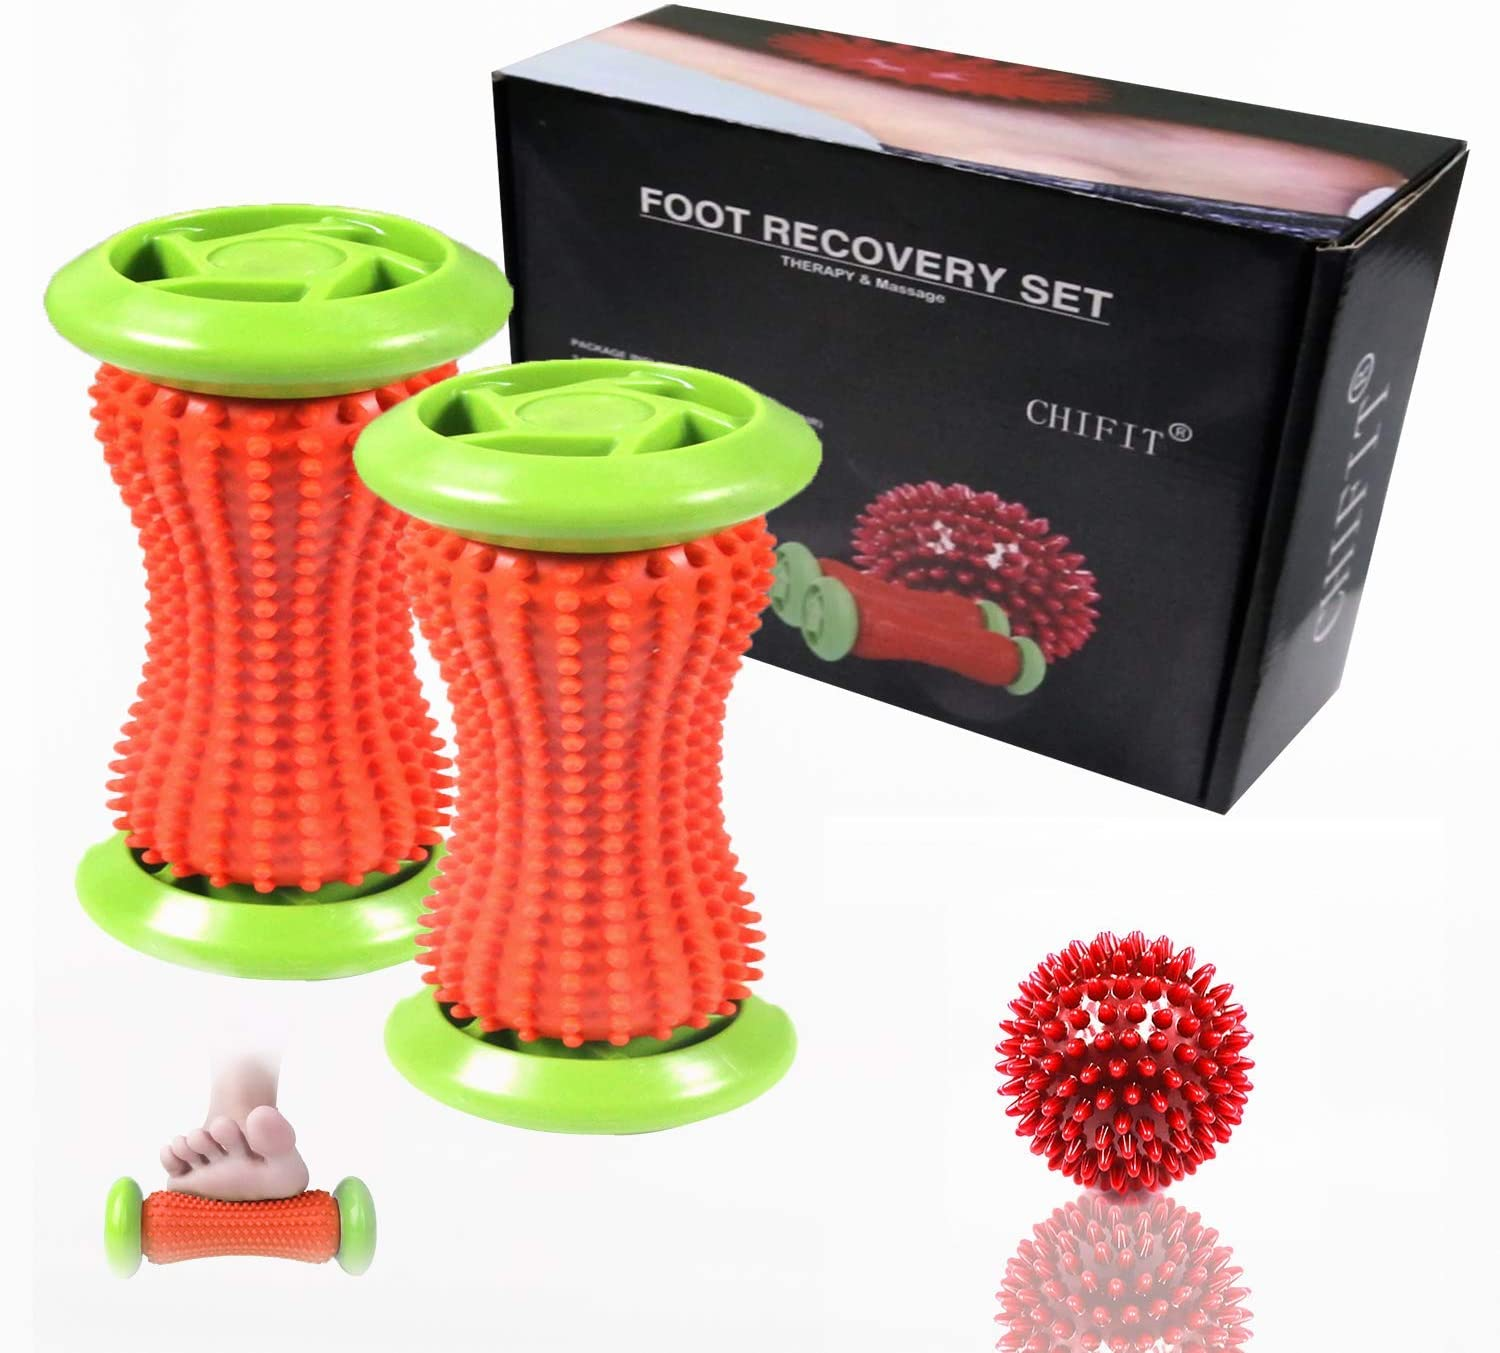 ChiFit Foot Rollers, Plantar Fasciitis Massage Rollers(2 Foot Rollers +1 Spiky Ball),Manual Foot Massagers - Shiatsu Acupressure Relaxation - Foot Arch Pain Instant Relief. - Parents Gift Kit